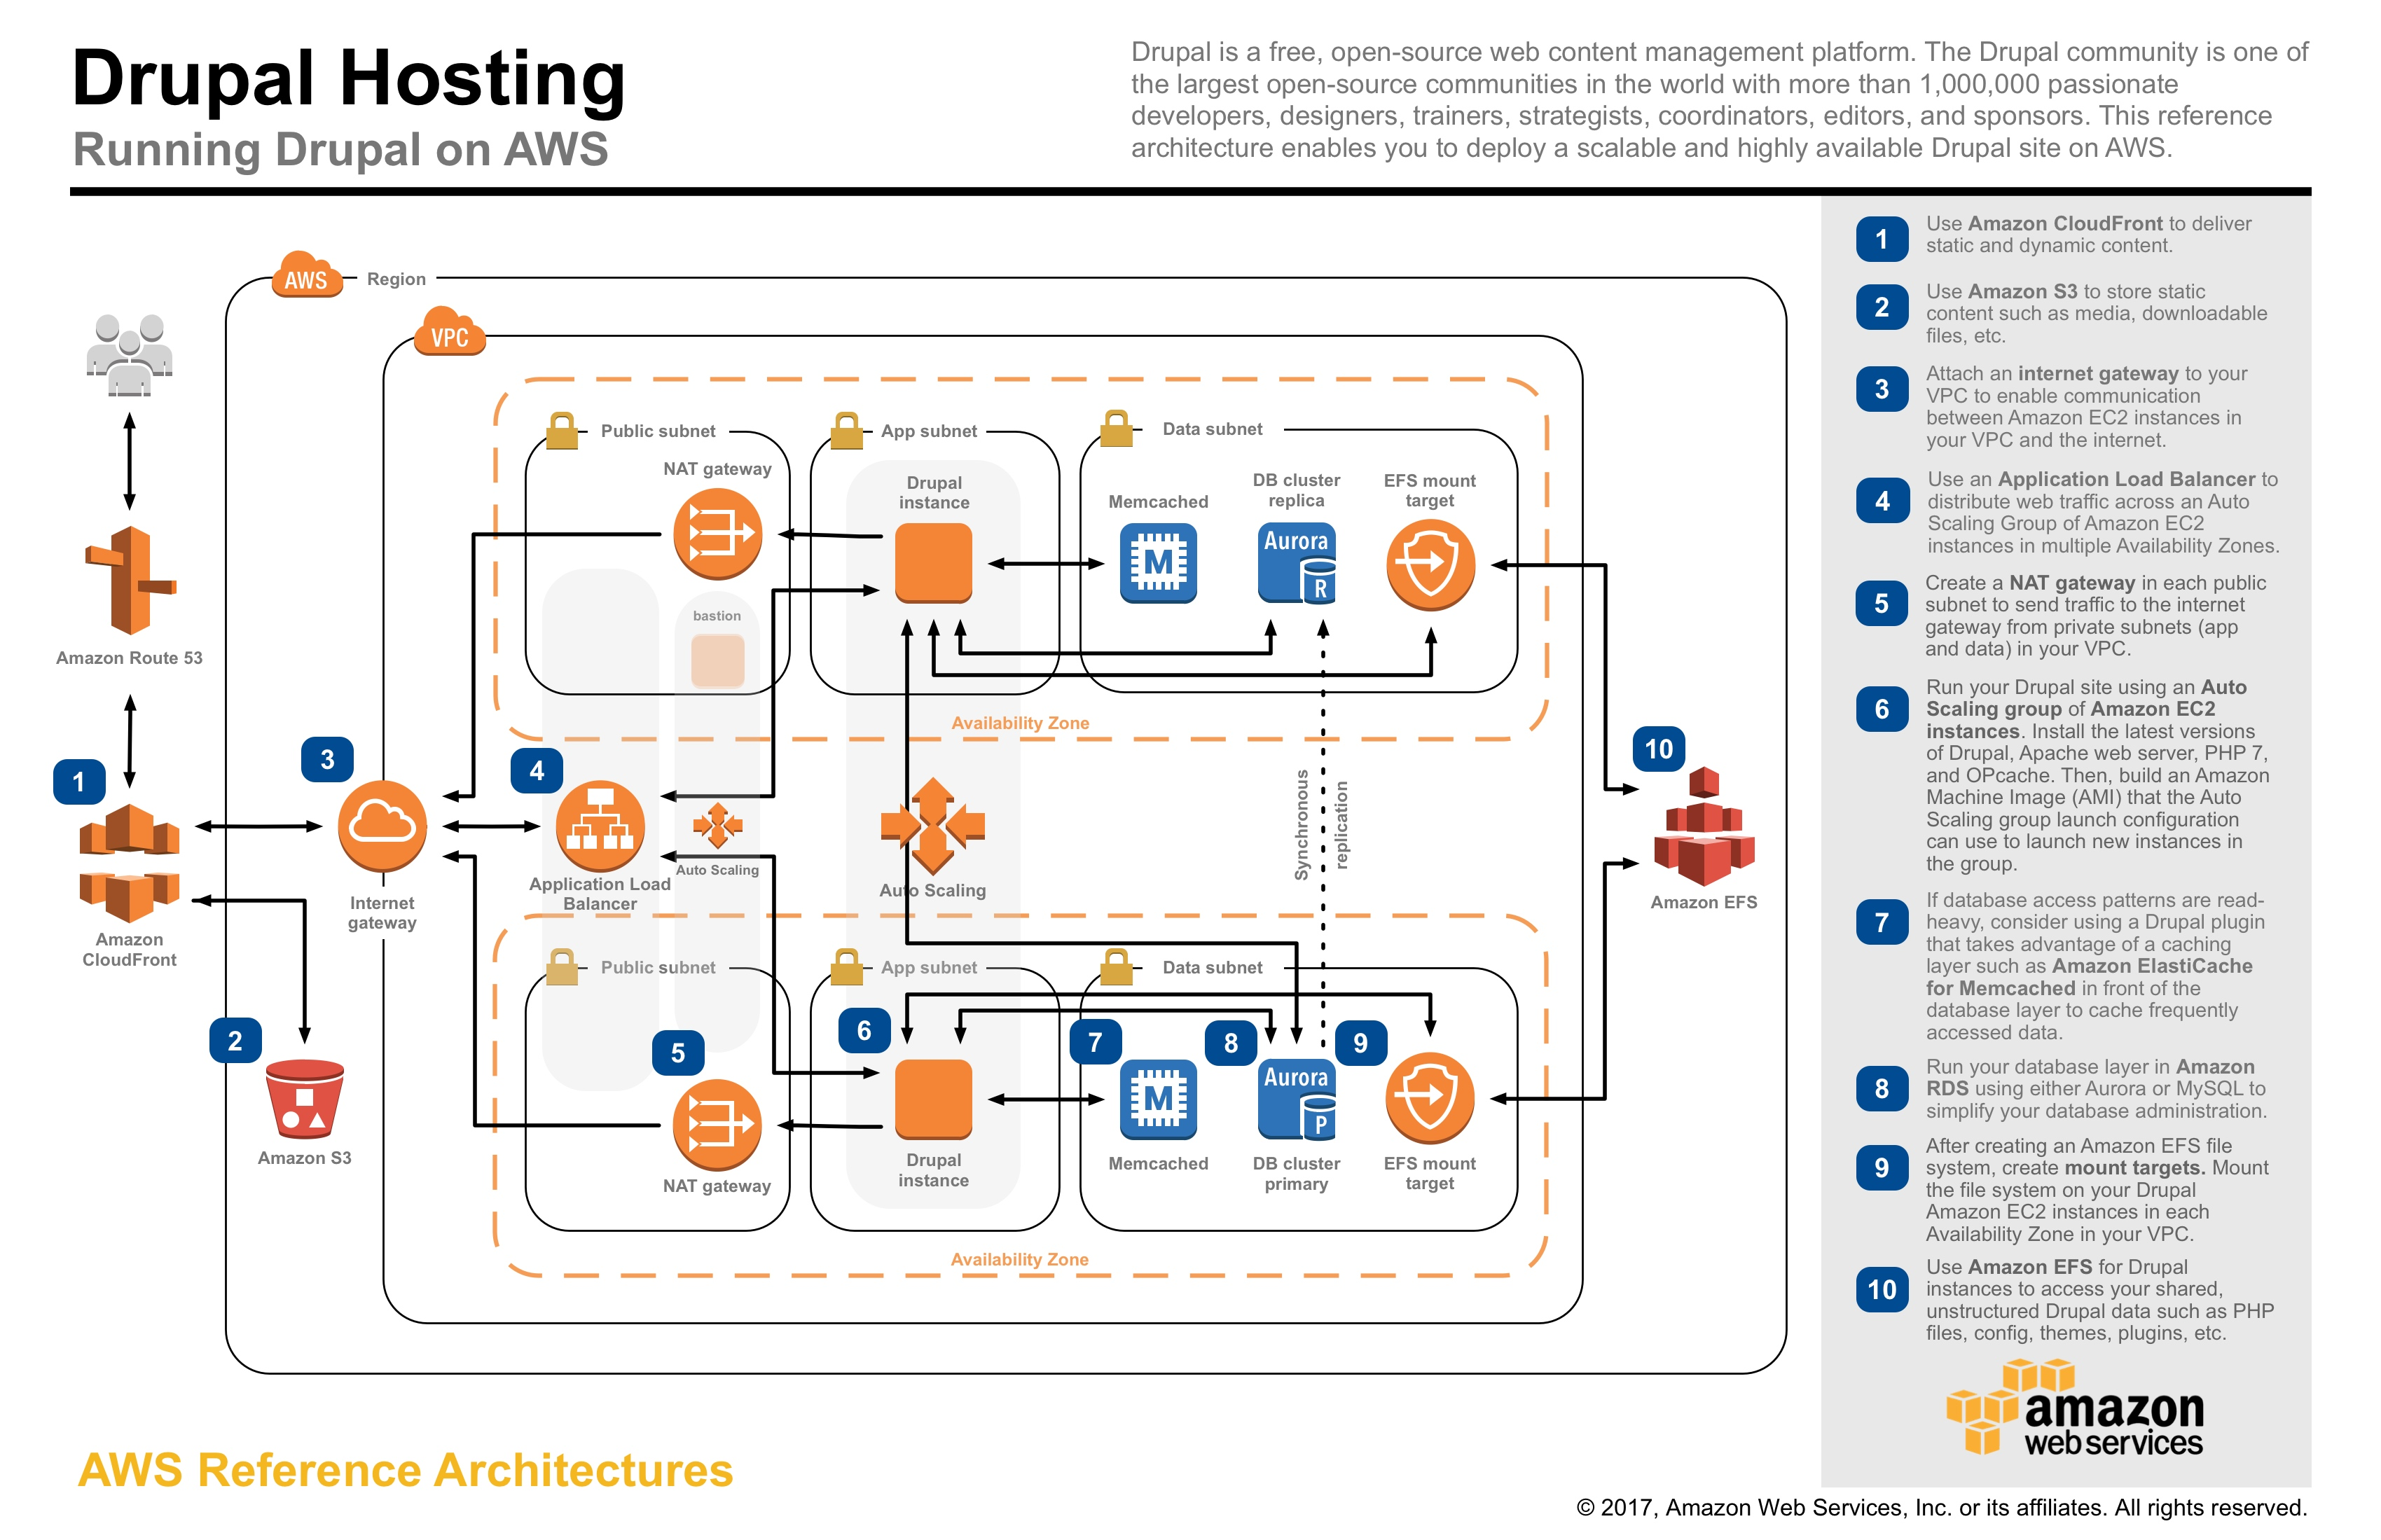 aws-reference-architecture-drupal